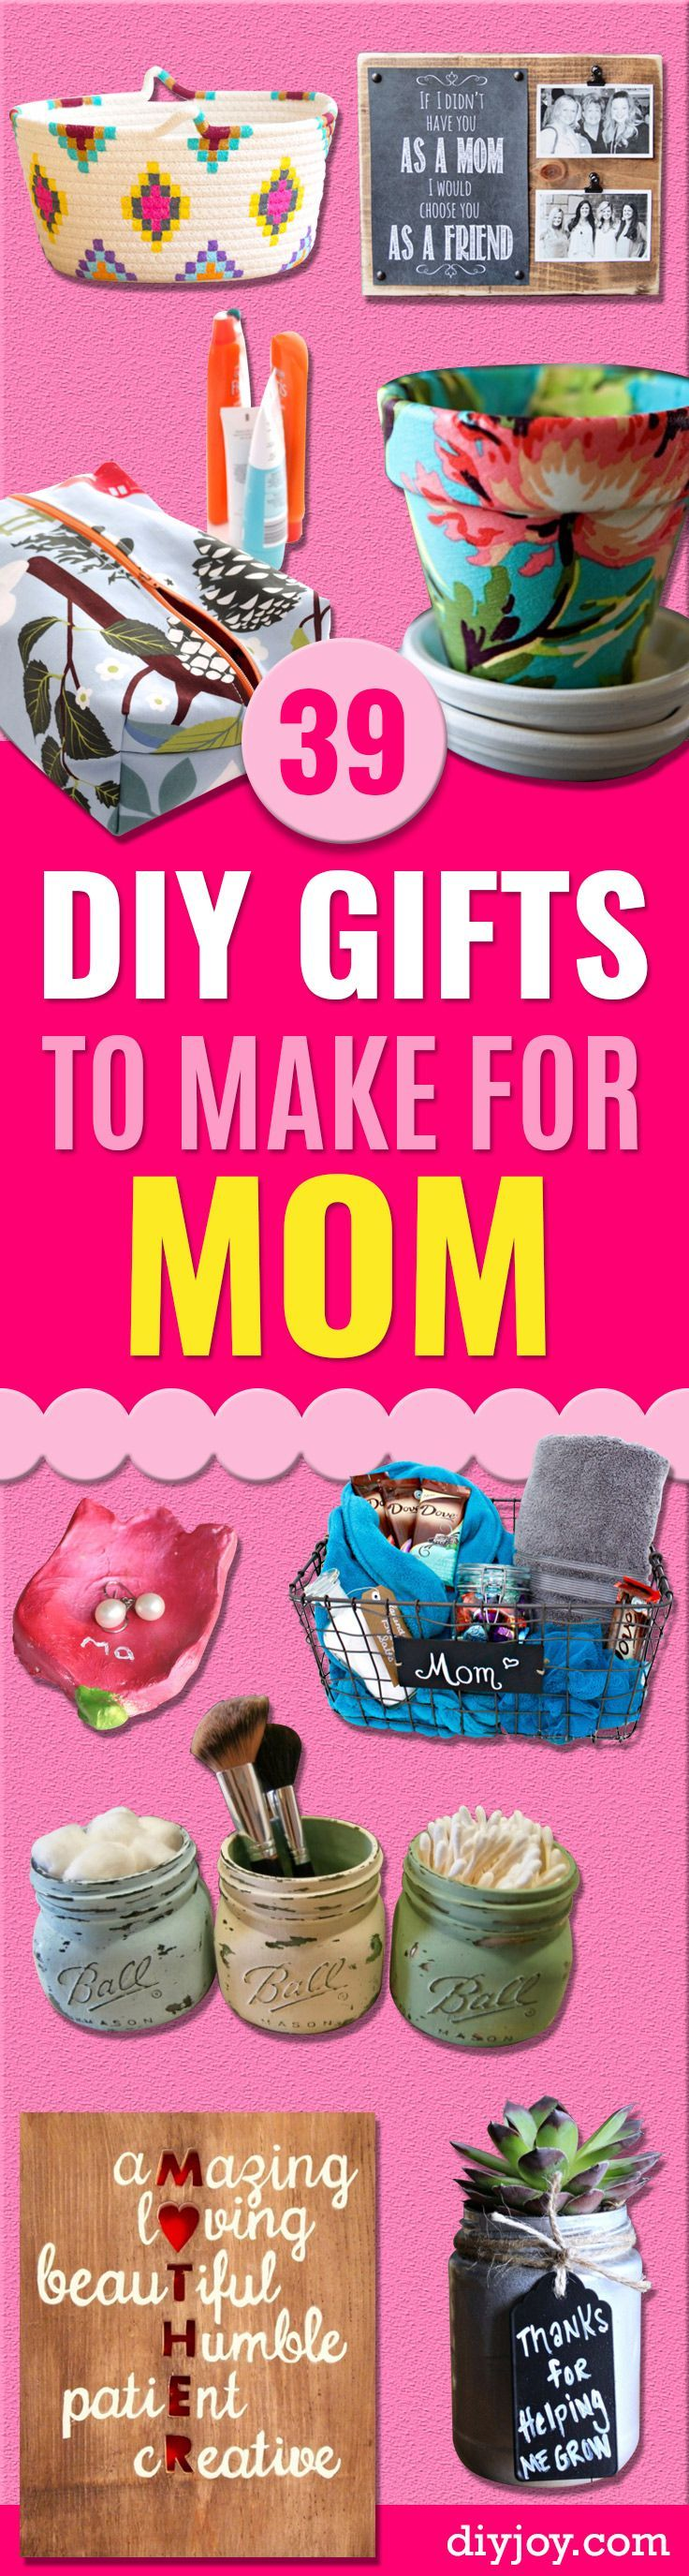 Christmas Gift Ideas For Mom Diy.Christmas Gifts Ideas 39 Creative Diy Gifts To Make For